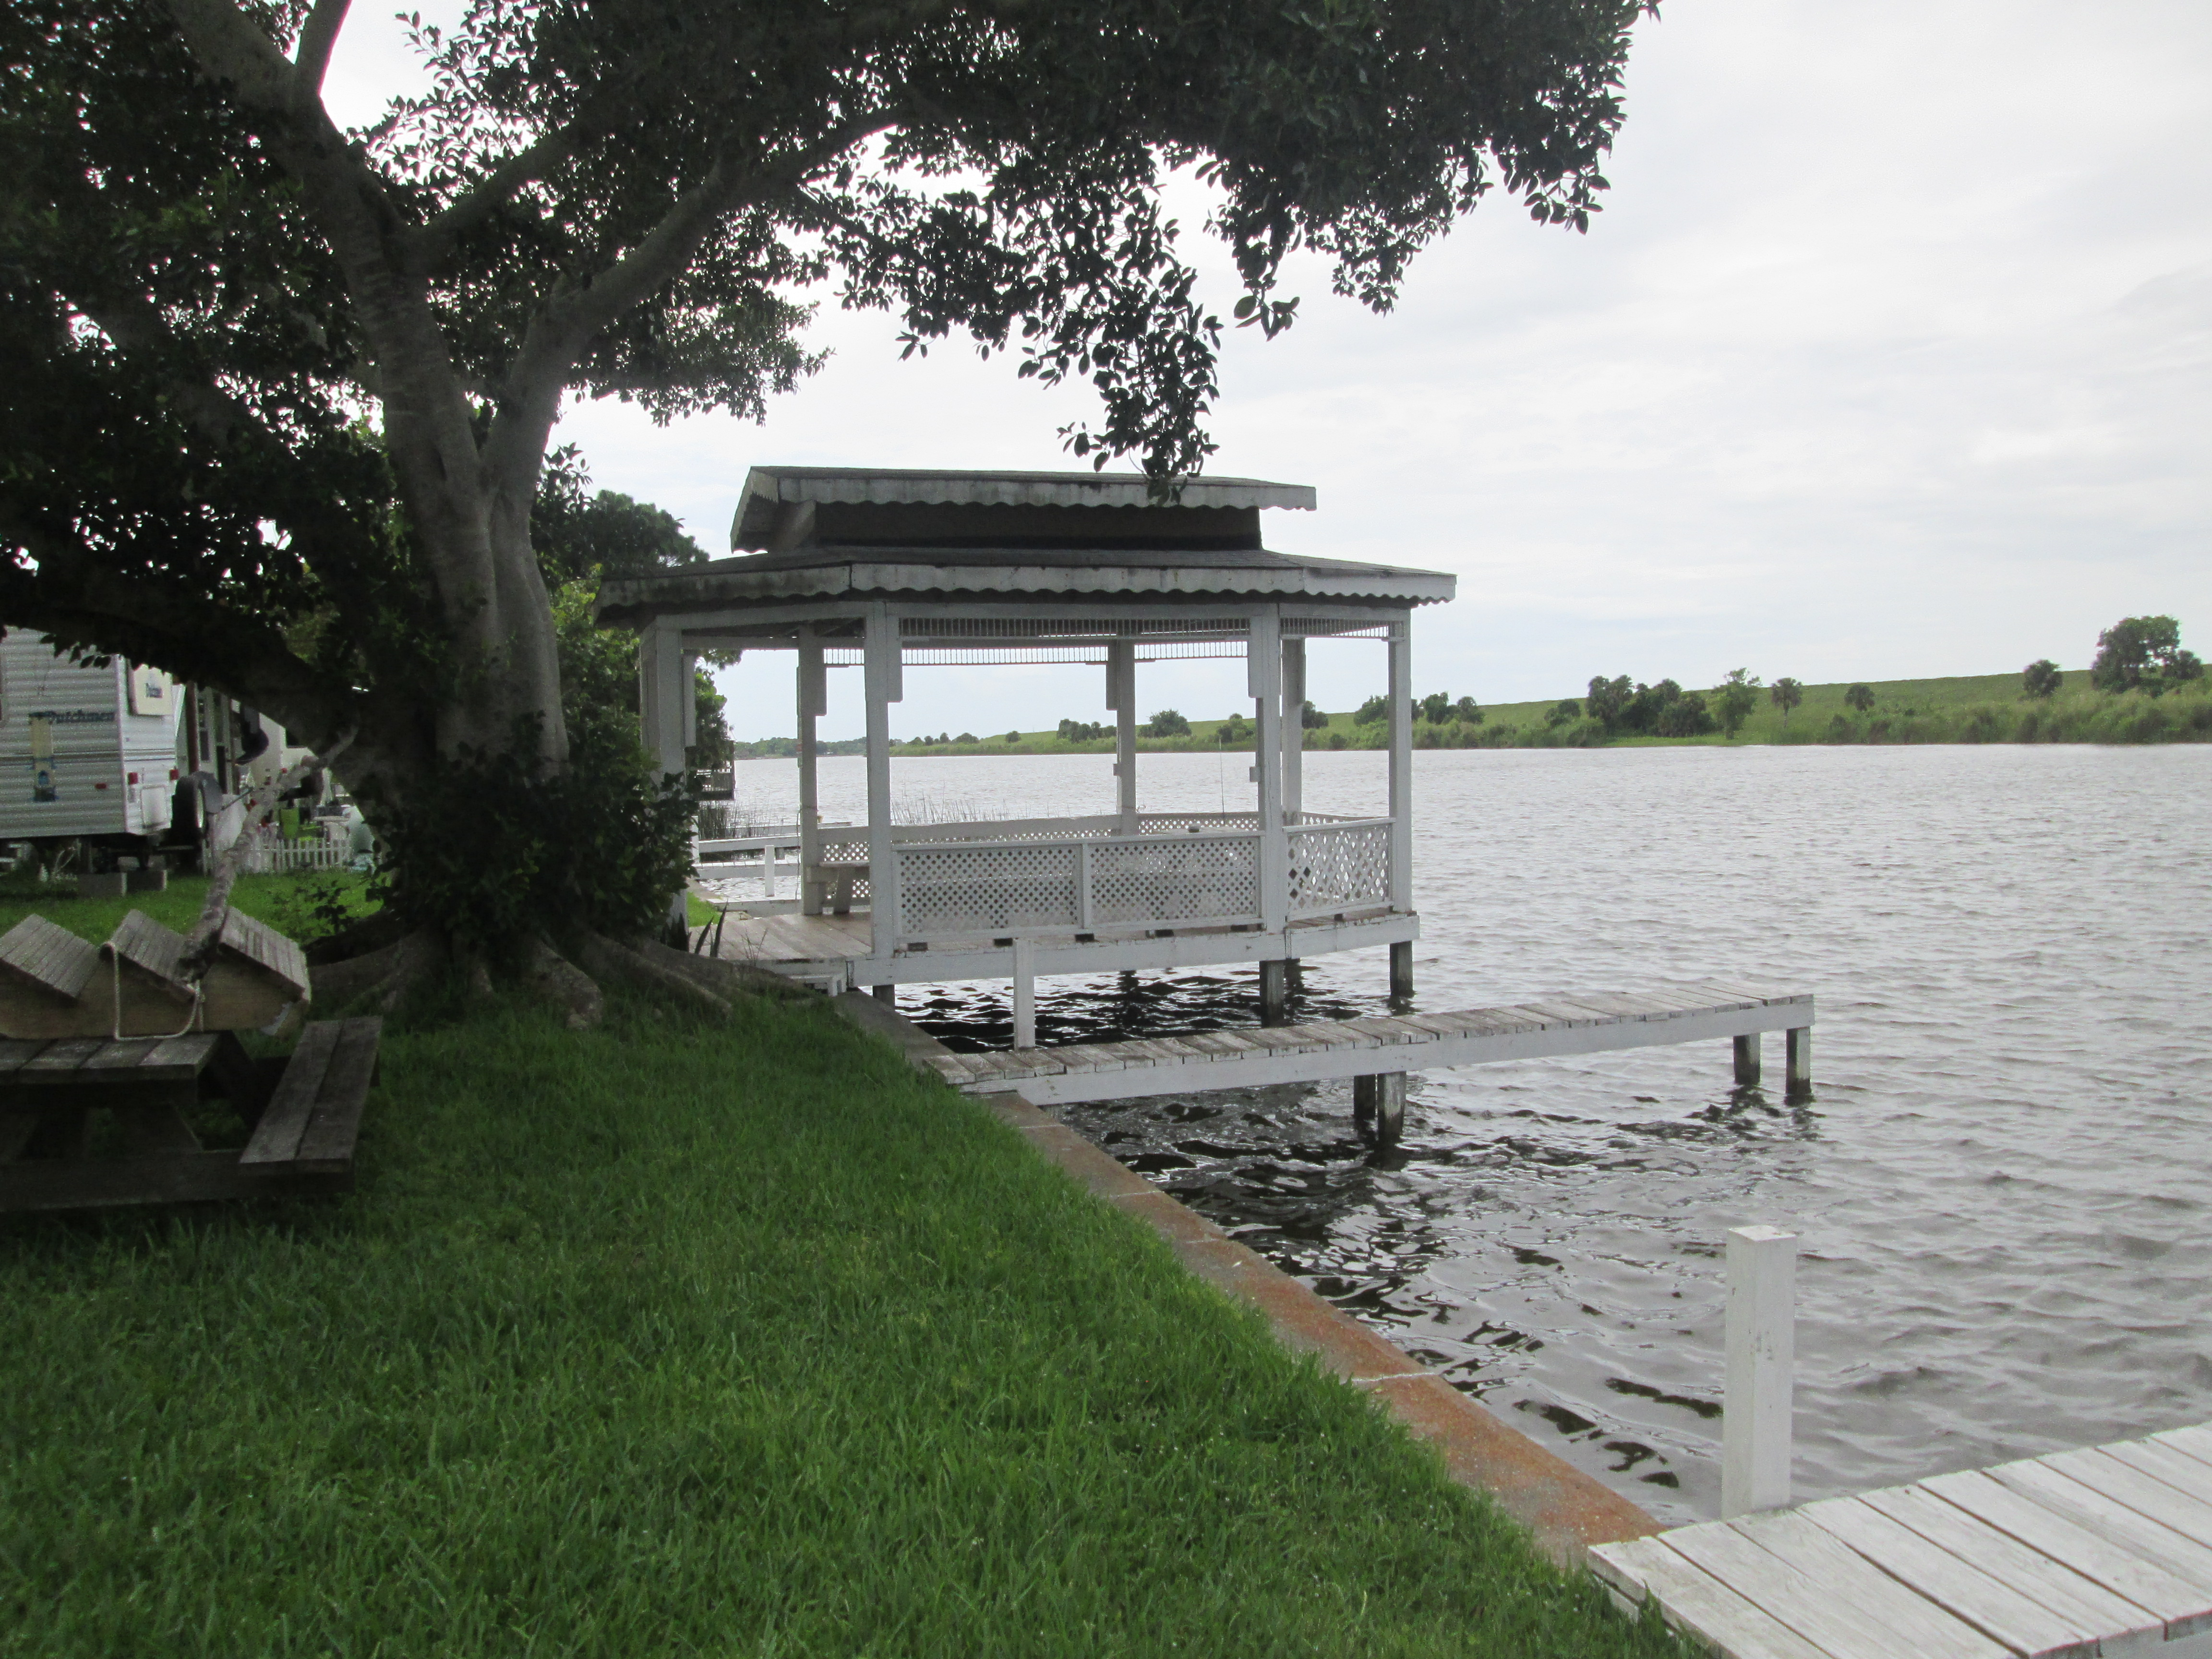 Sit & relax at the picnic tables on the charming gazebo on the docks at the tiny house village in Florida